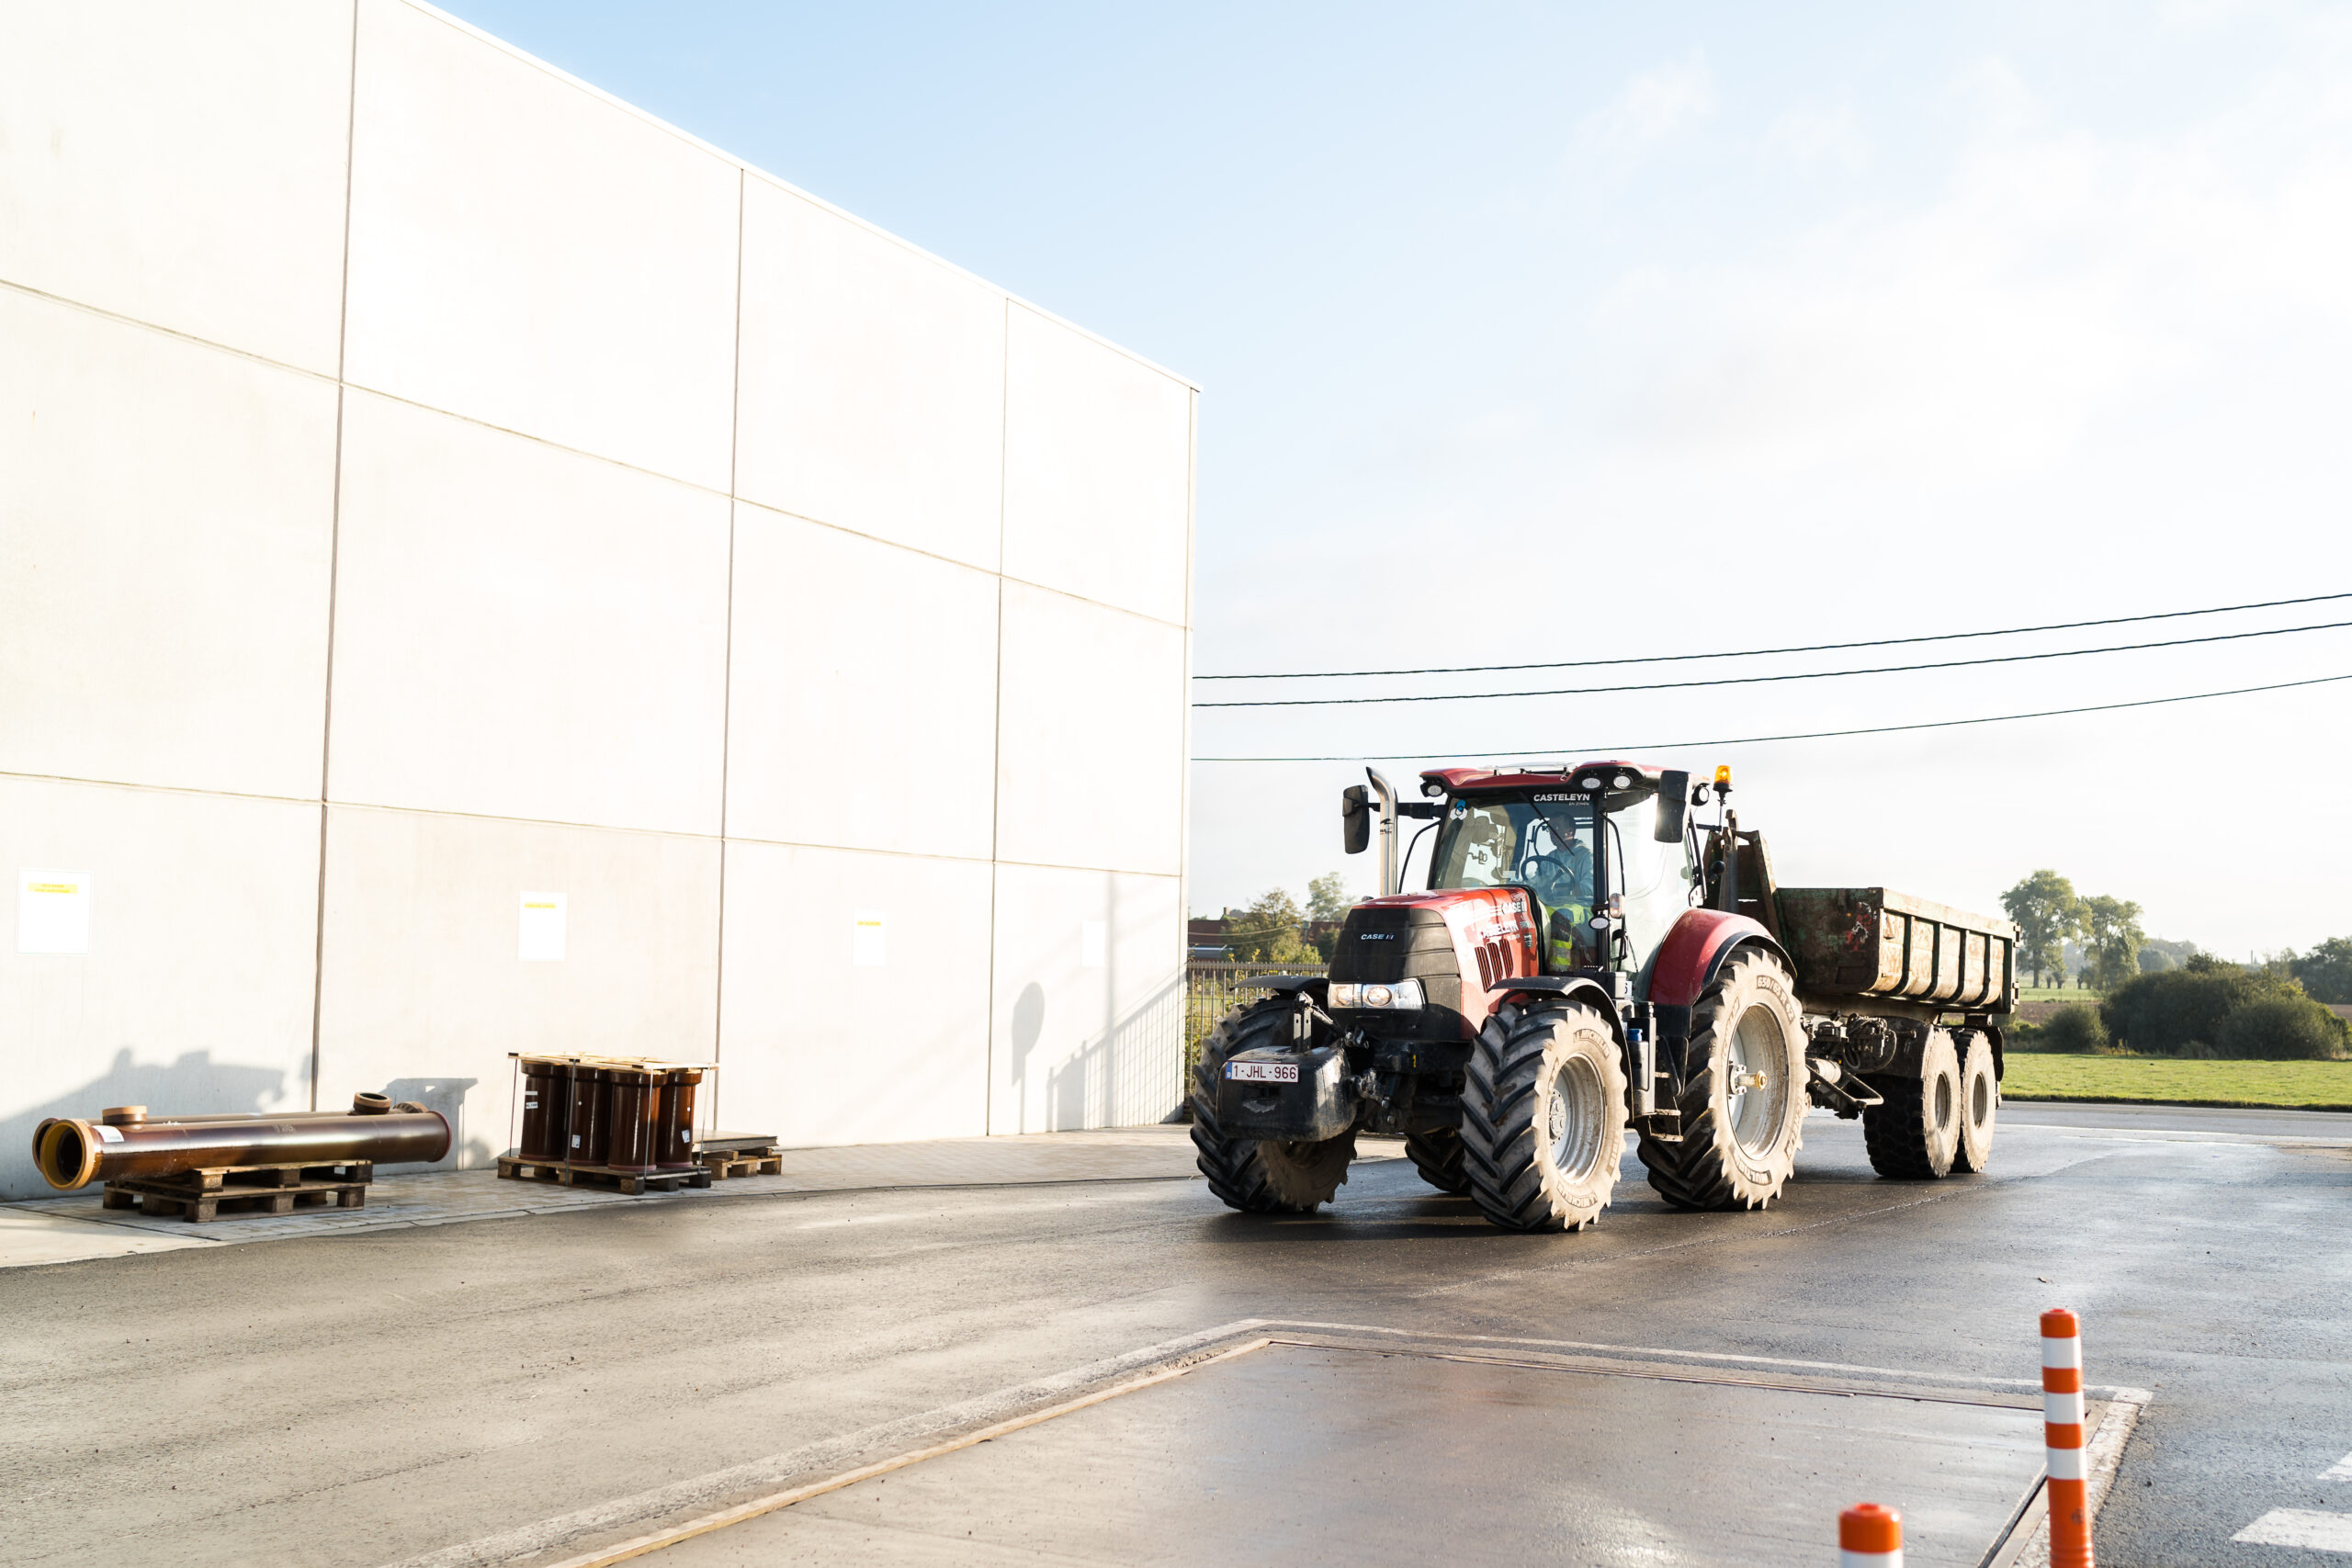 Vacature Chauffeur CE tractor